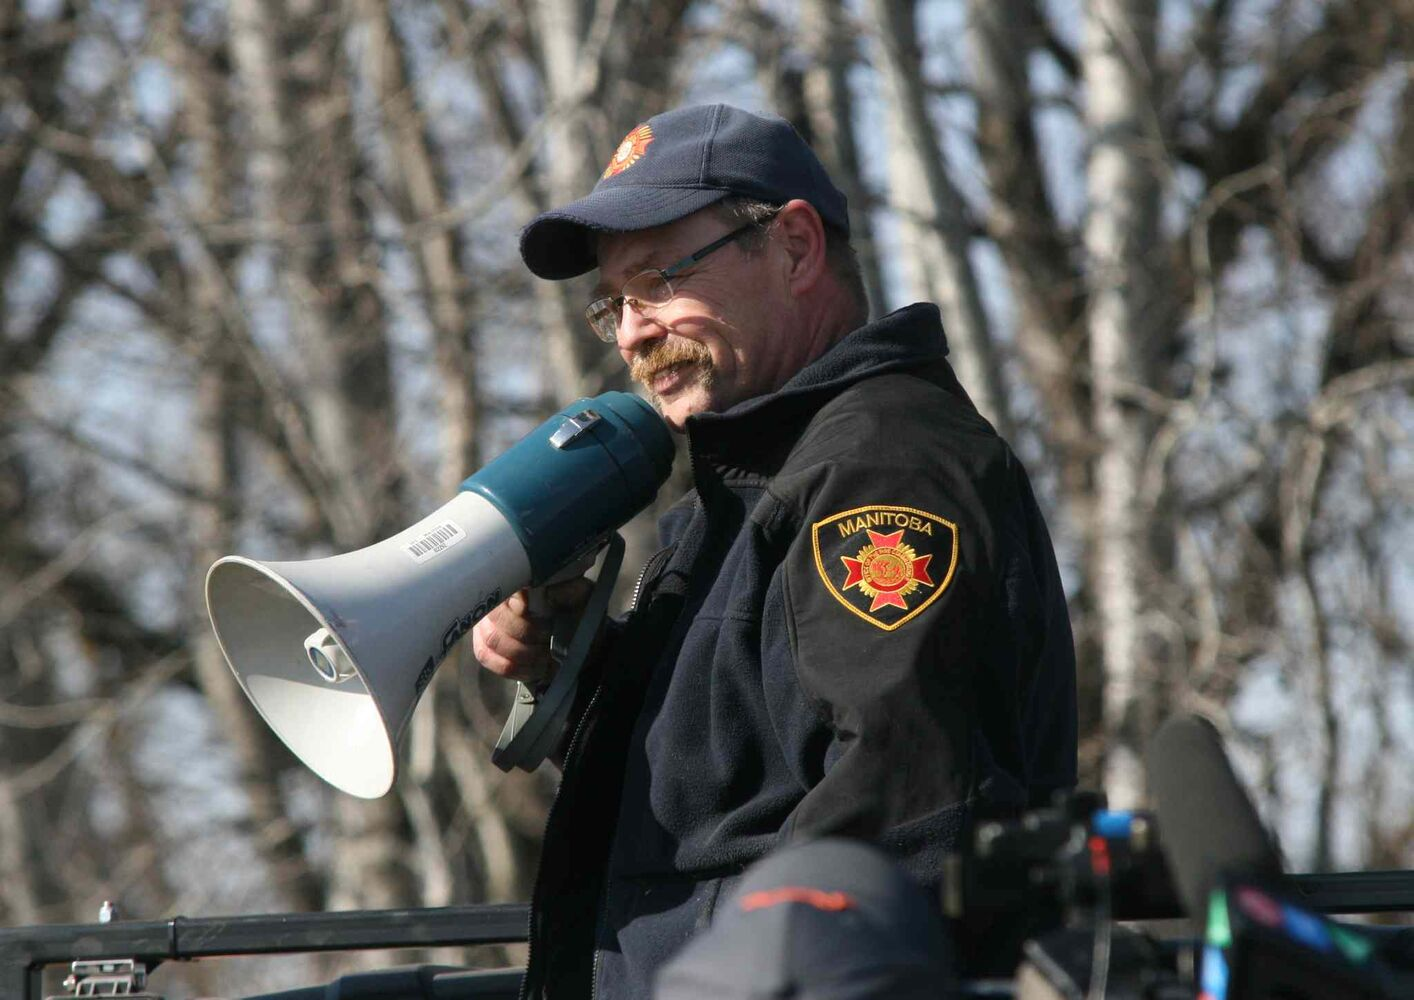 Brandon Sun An official with the Manitoba Office of the Fire Commissioner gives instructions to relief volunteers. (Matt Goerzen/Brandon Sun)